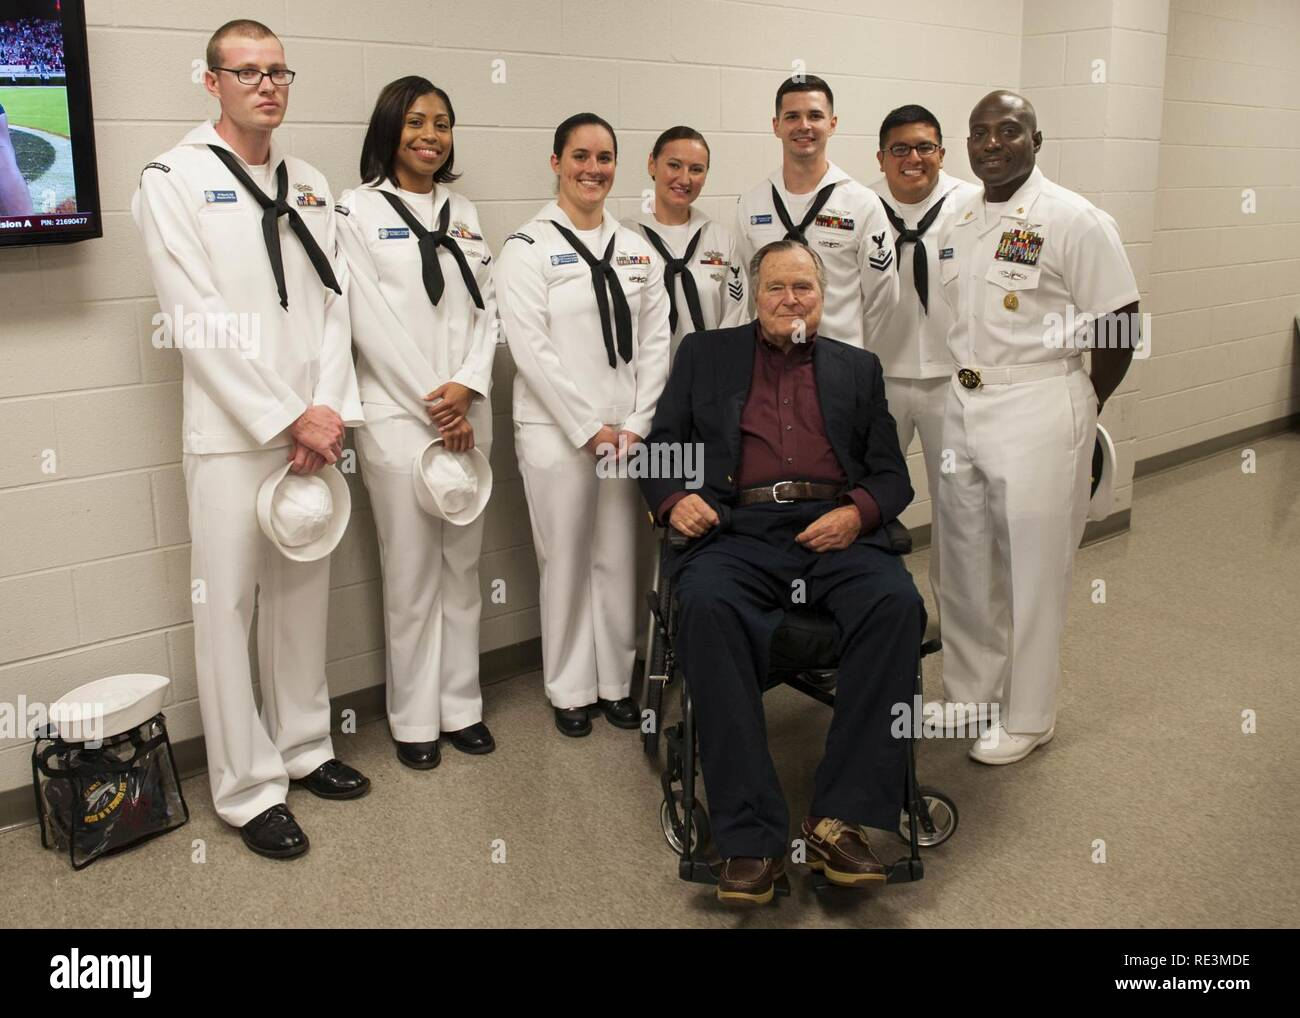 (COLLEGE STATION, Texas) Former President George H.W. Bush poses for a portrait with Sailors assigned to USS George H.W. Bush (CVN 77) during a military appreciation football game at Texas A&M University. The game is part of a two-day namesake trip to Texas where Sailors engaged with the local community about the importance of the Navy in defense and prosperity. Stock Photo